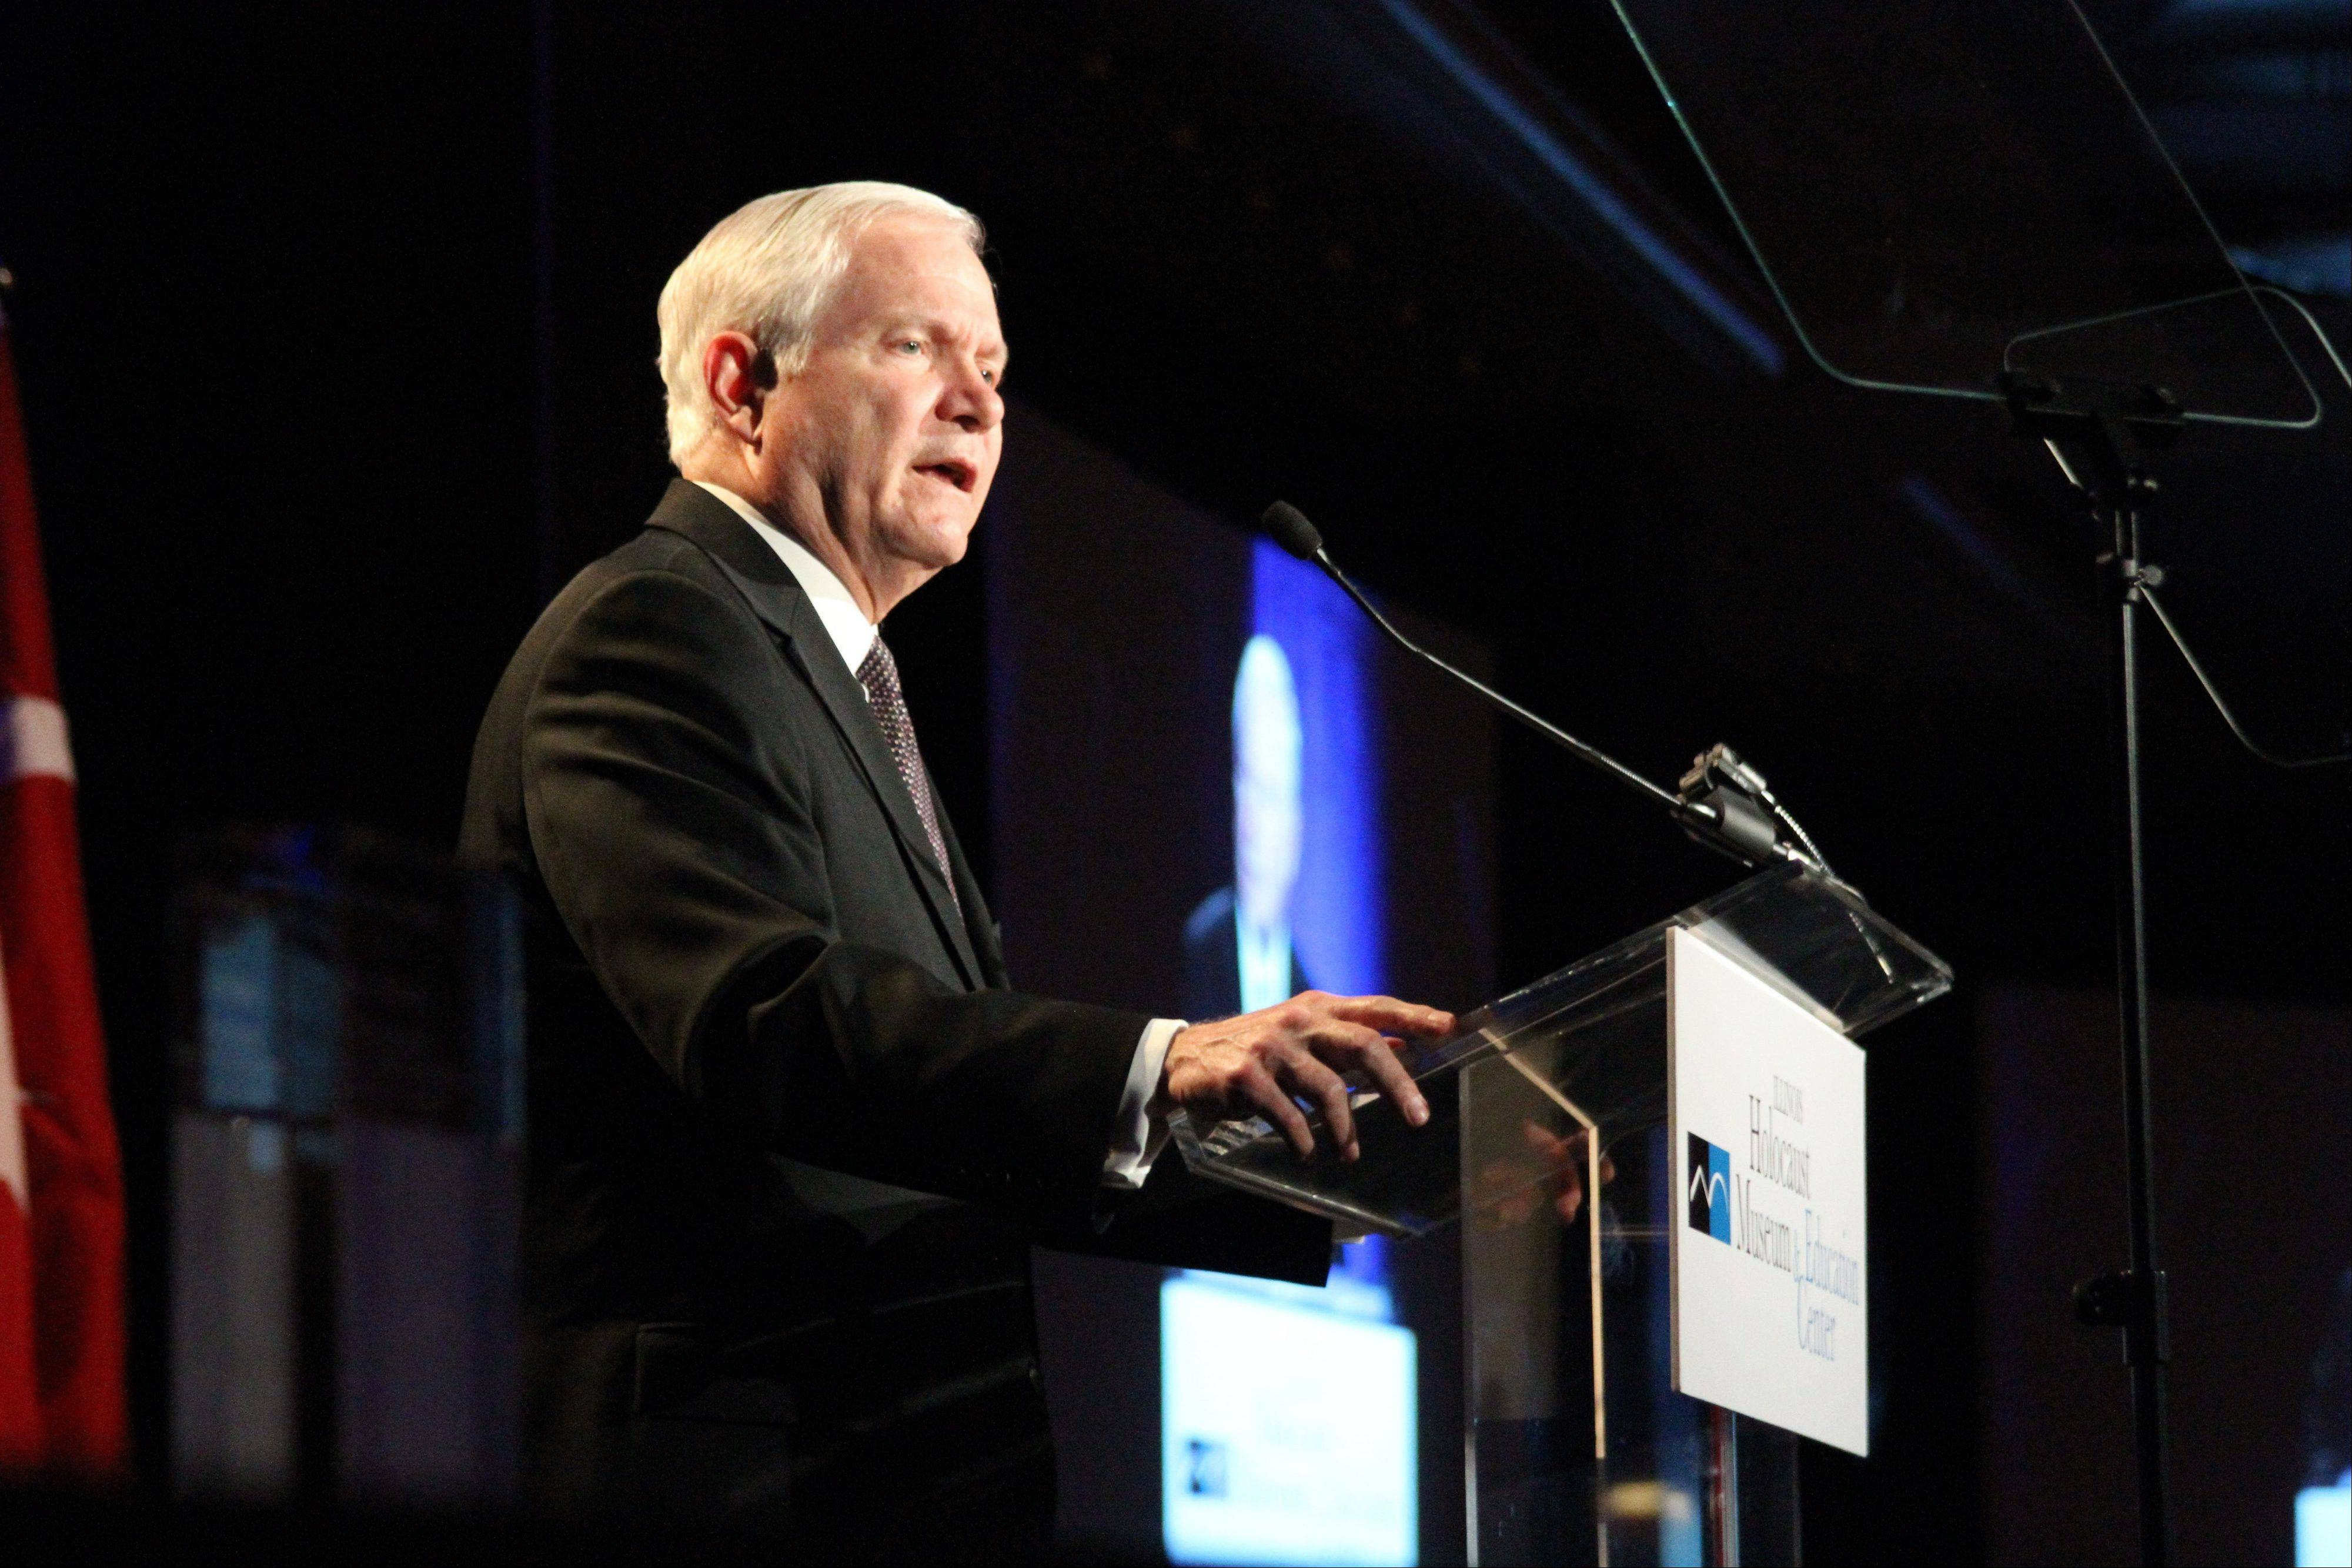 U.S. Secretary of Defense (2006-2011) Robert Gates speaks to more than 1,500 of Chicago's civic and business leaders, elected officials and Holocaust survivors at the Illinois Holocaust Museum & Education Center's Humanitarian Awards Dinner March 6 at the Hyatt Regency Chicago.